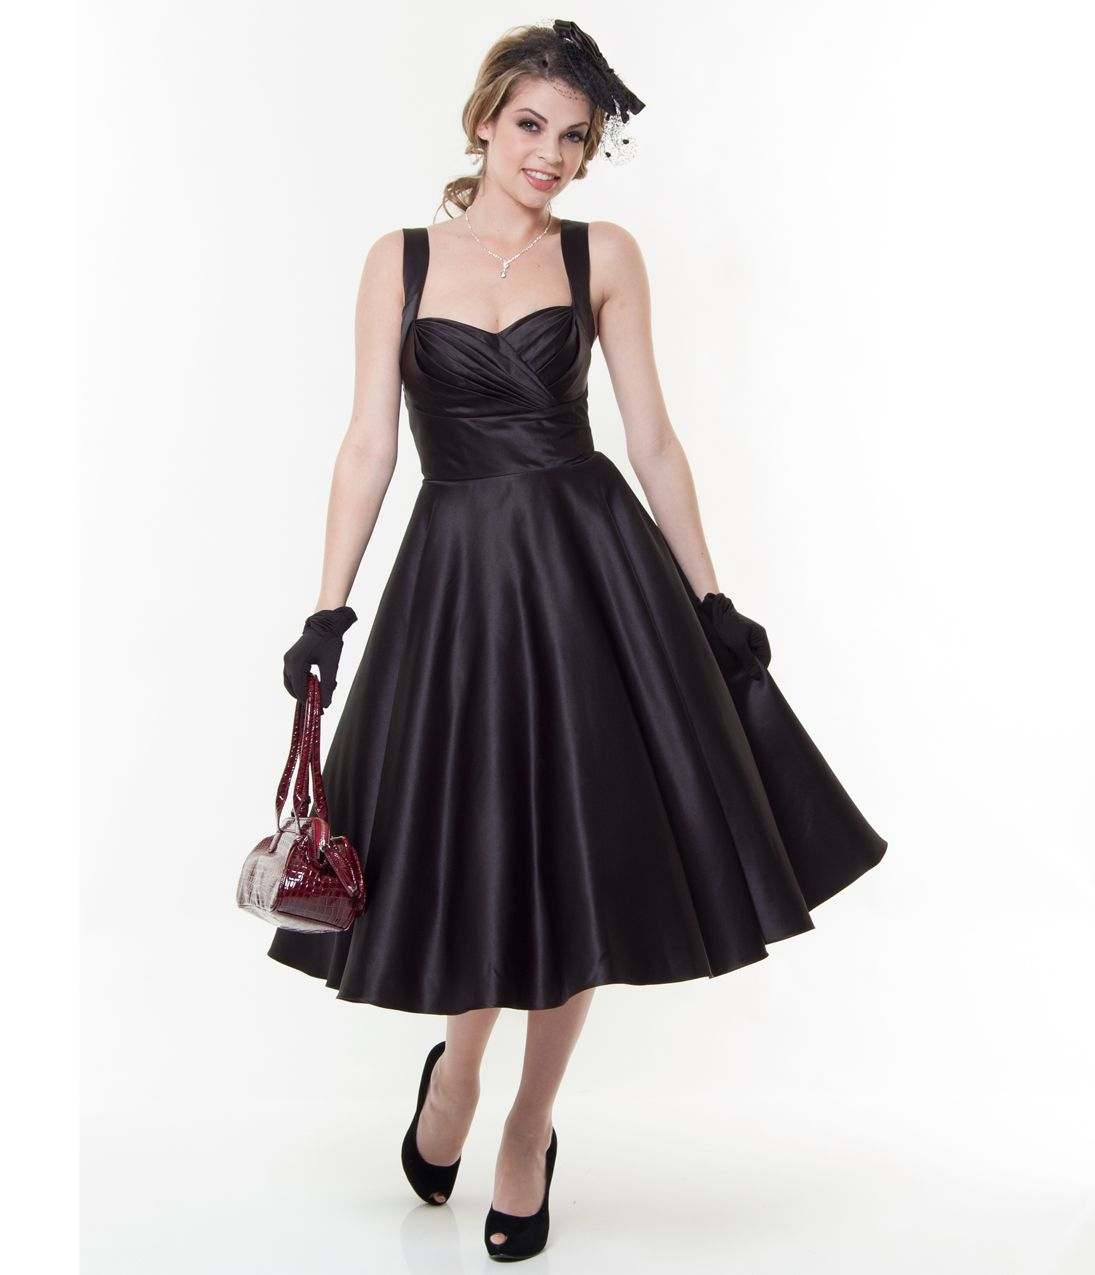 1950s Plus Size Dresses, Clothing Black sweetheart dress